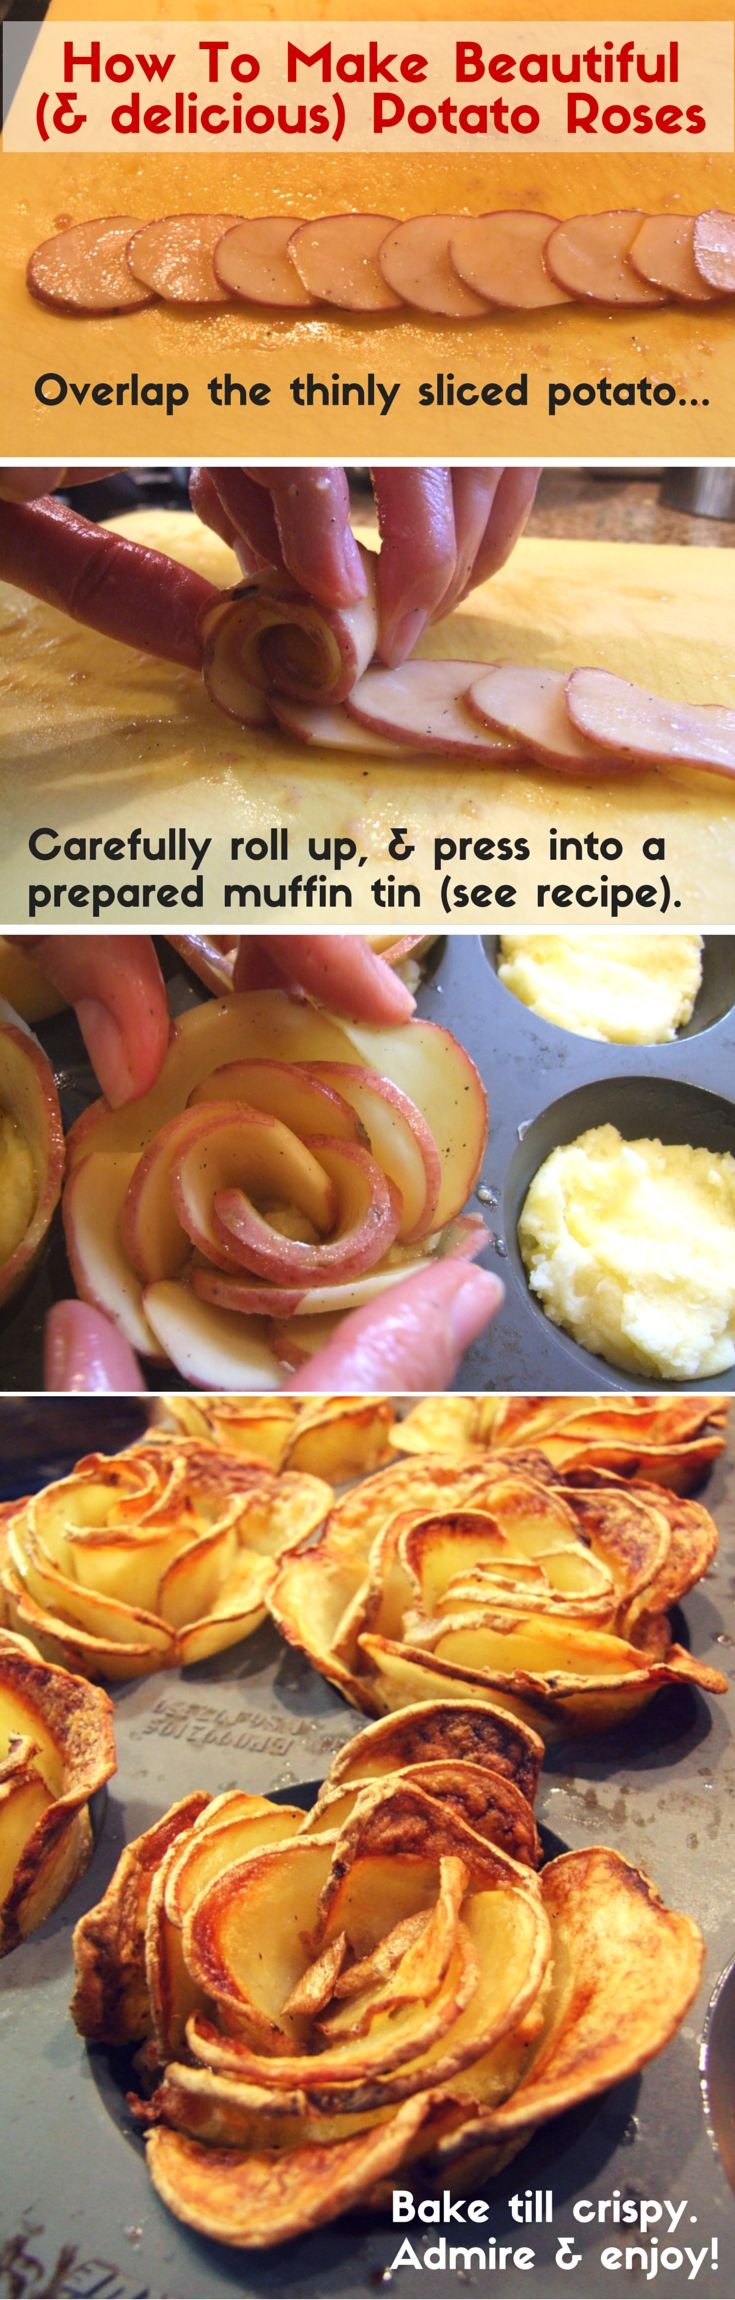 Tutorial: How to Make Beautiful and Delicious Potato Roses ~ The most beautiful thing you can make with a potato... These gorgeous potato roses add a touch of glamour or romance to any plate - Simple, but impressive!